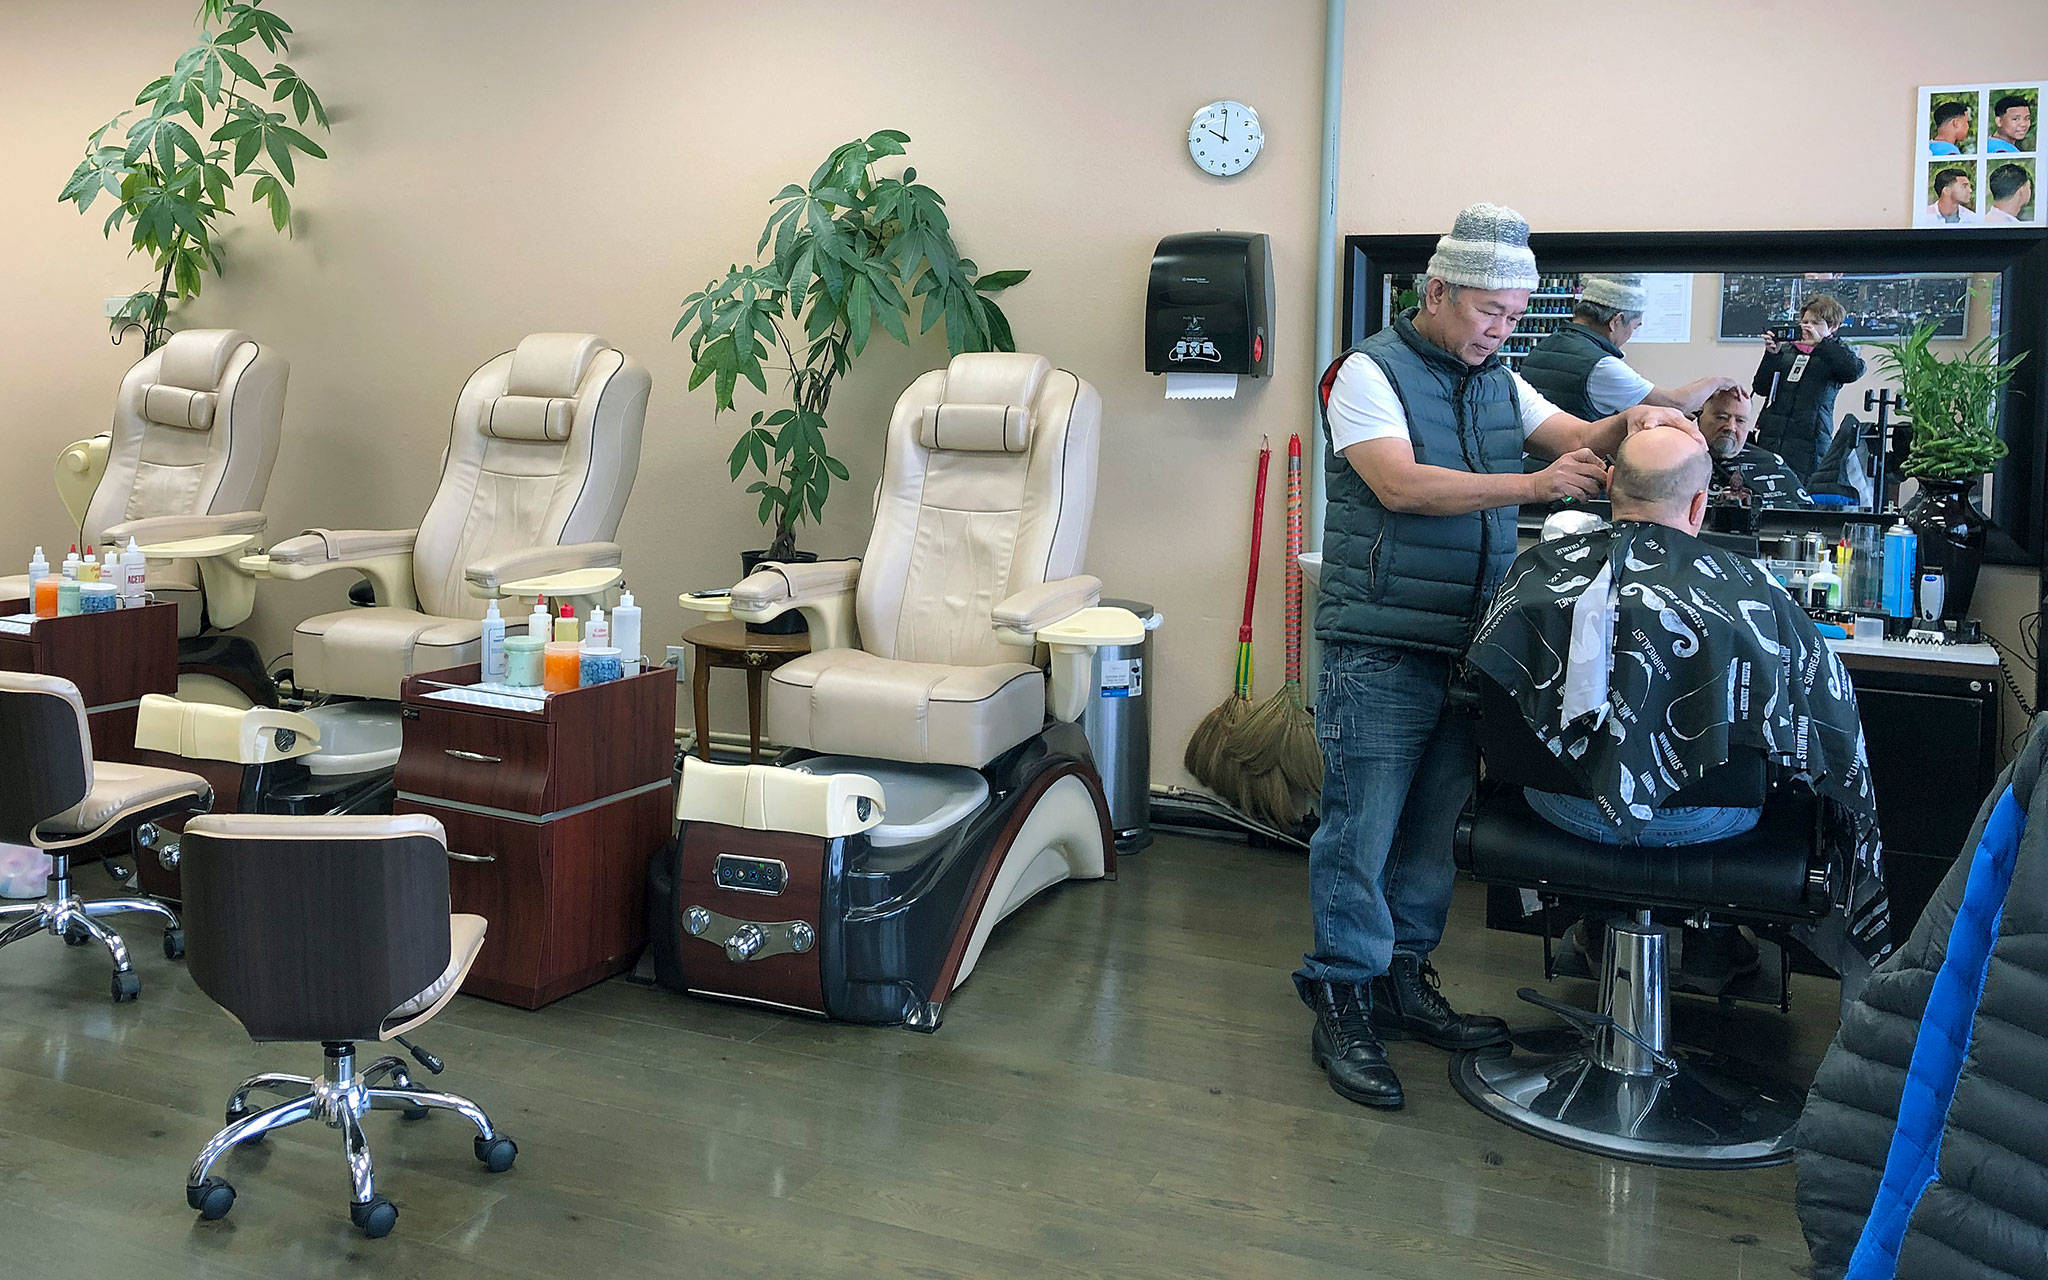 Tommy Nguyen, owner of Tommy Barber Nail Spa in Everett, cuts a customer's hair Monday. Nguyen closed the nail salon four days ago for a lack of business. (Janice Podsada / The Herald)